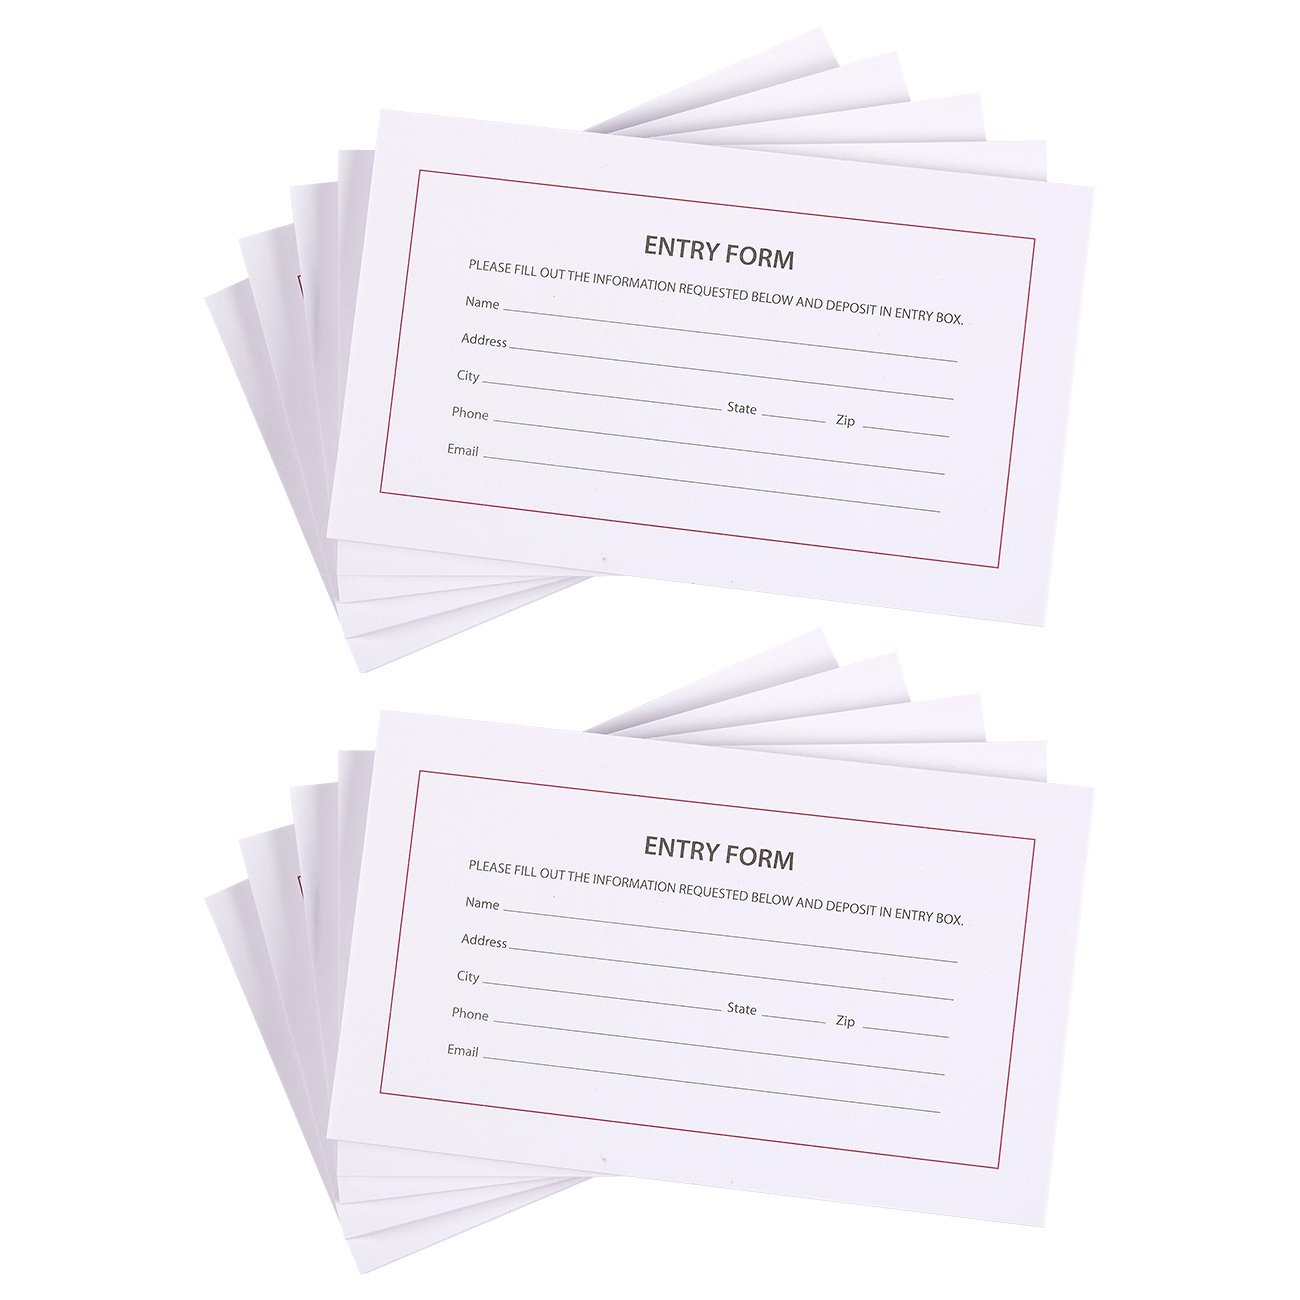 Blue Panda 10-Pack Entry Form Pads, 100 Sheets Per Pad - Entry Cards for Contests, Raffles, Ballots, Drawings, 6.2 x 3.7 Inches